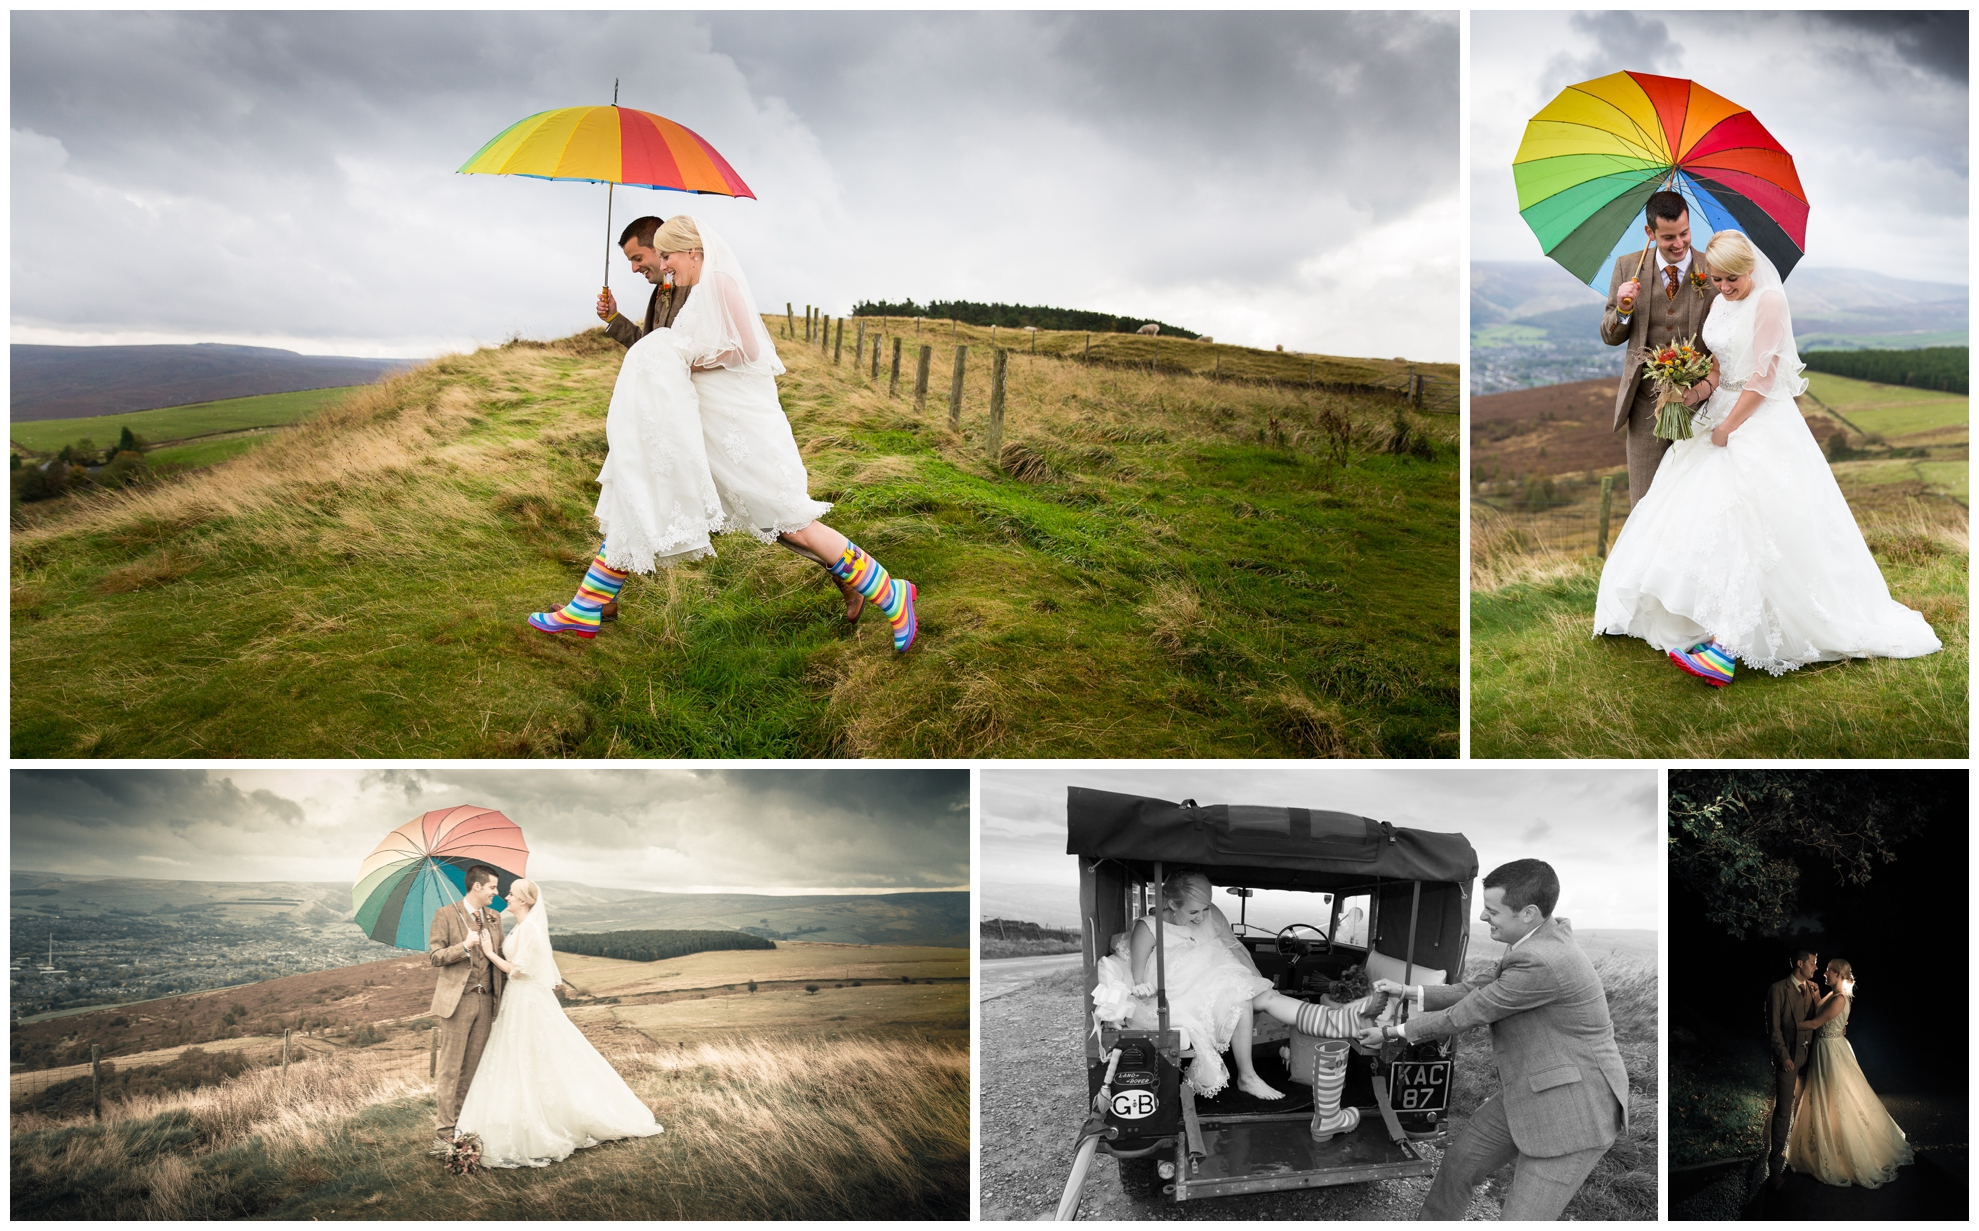 wedding photography in manchester derbyshire amp cheshire